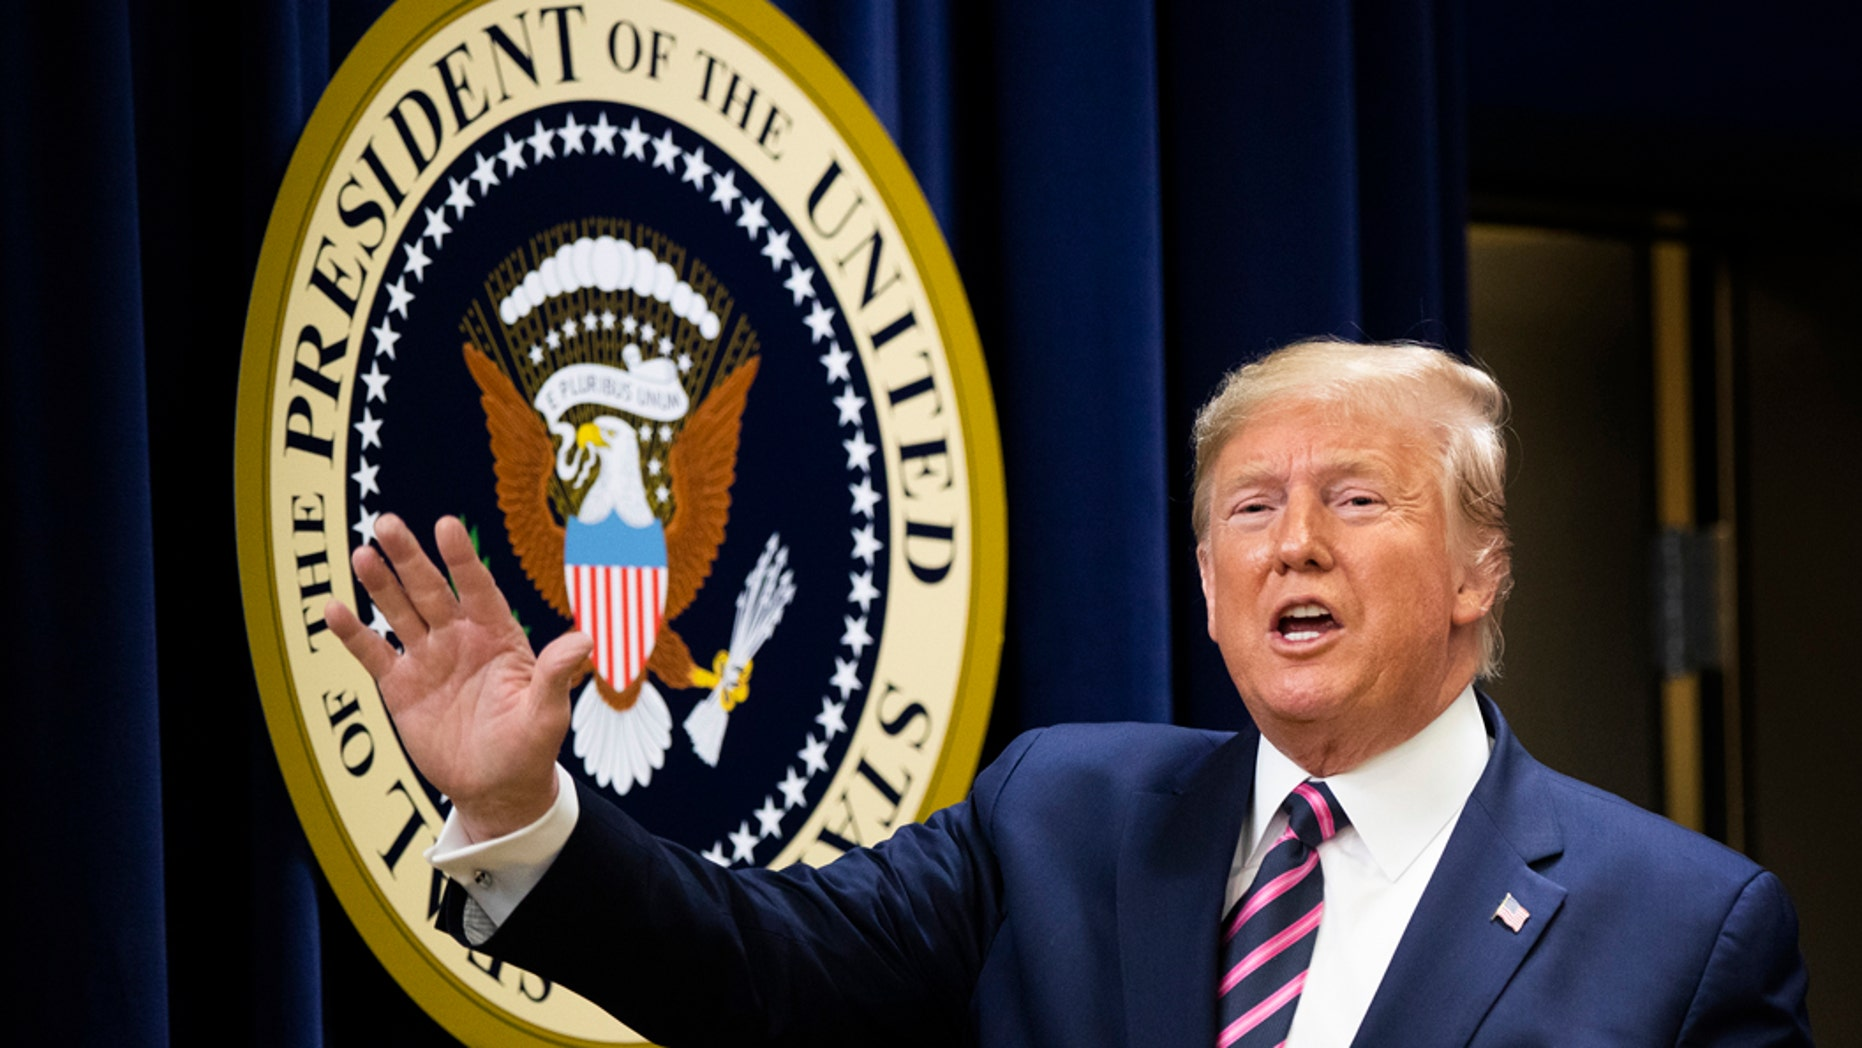 President Donald Trump waves during a summit on transforming mental health treatment to combat homelessness, violence, and substance abuse, at the Eisenhower Executive Office Building on the White House complex in Washington, Thursday, Dec. 19, 2019, in Washington. (AP Photo/Manuel Balce Ceneta)